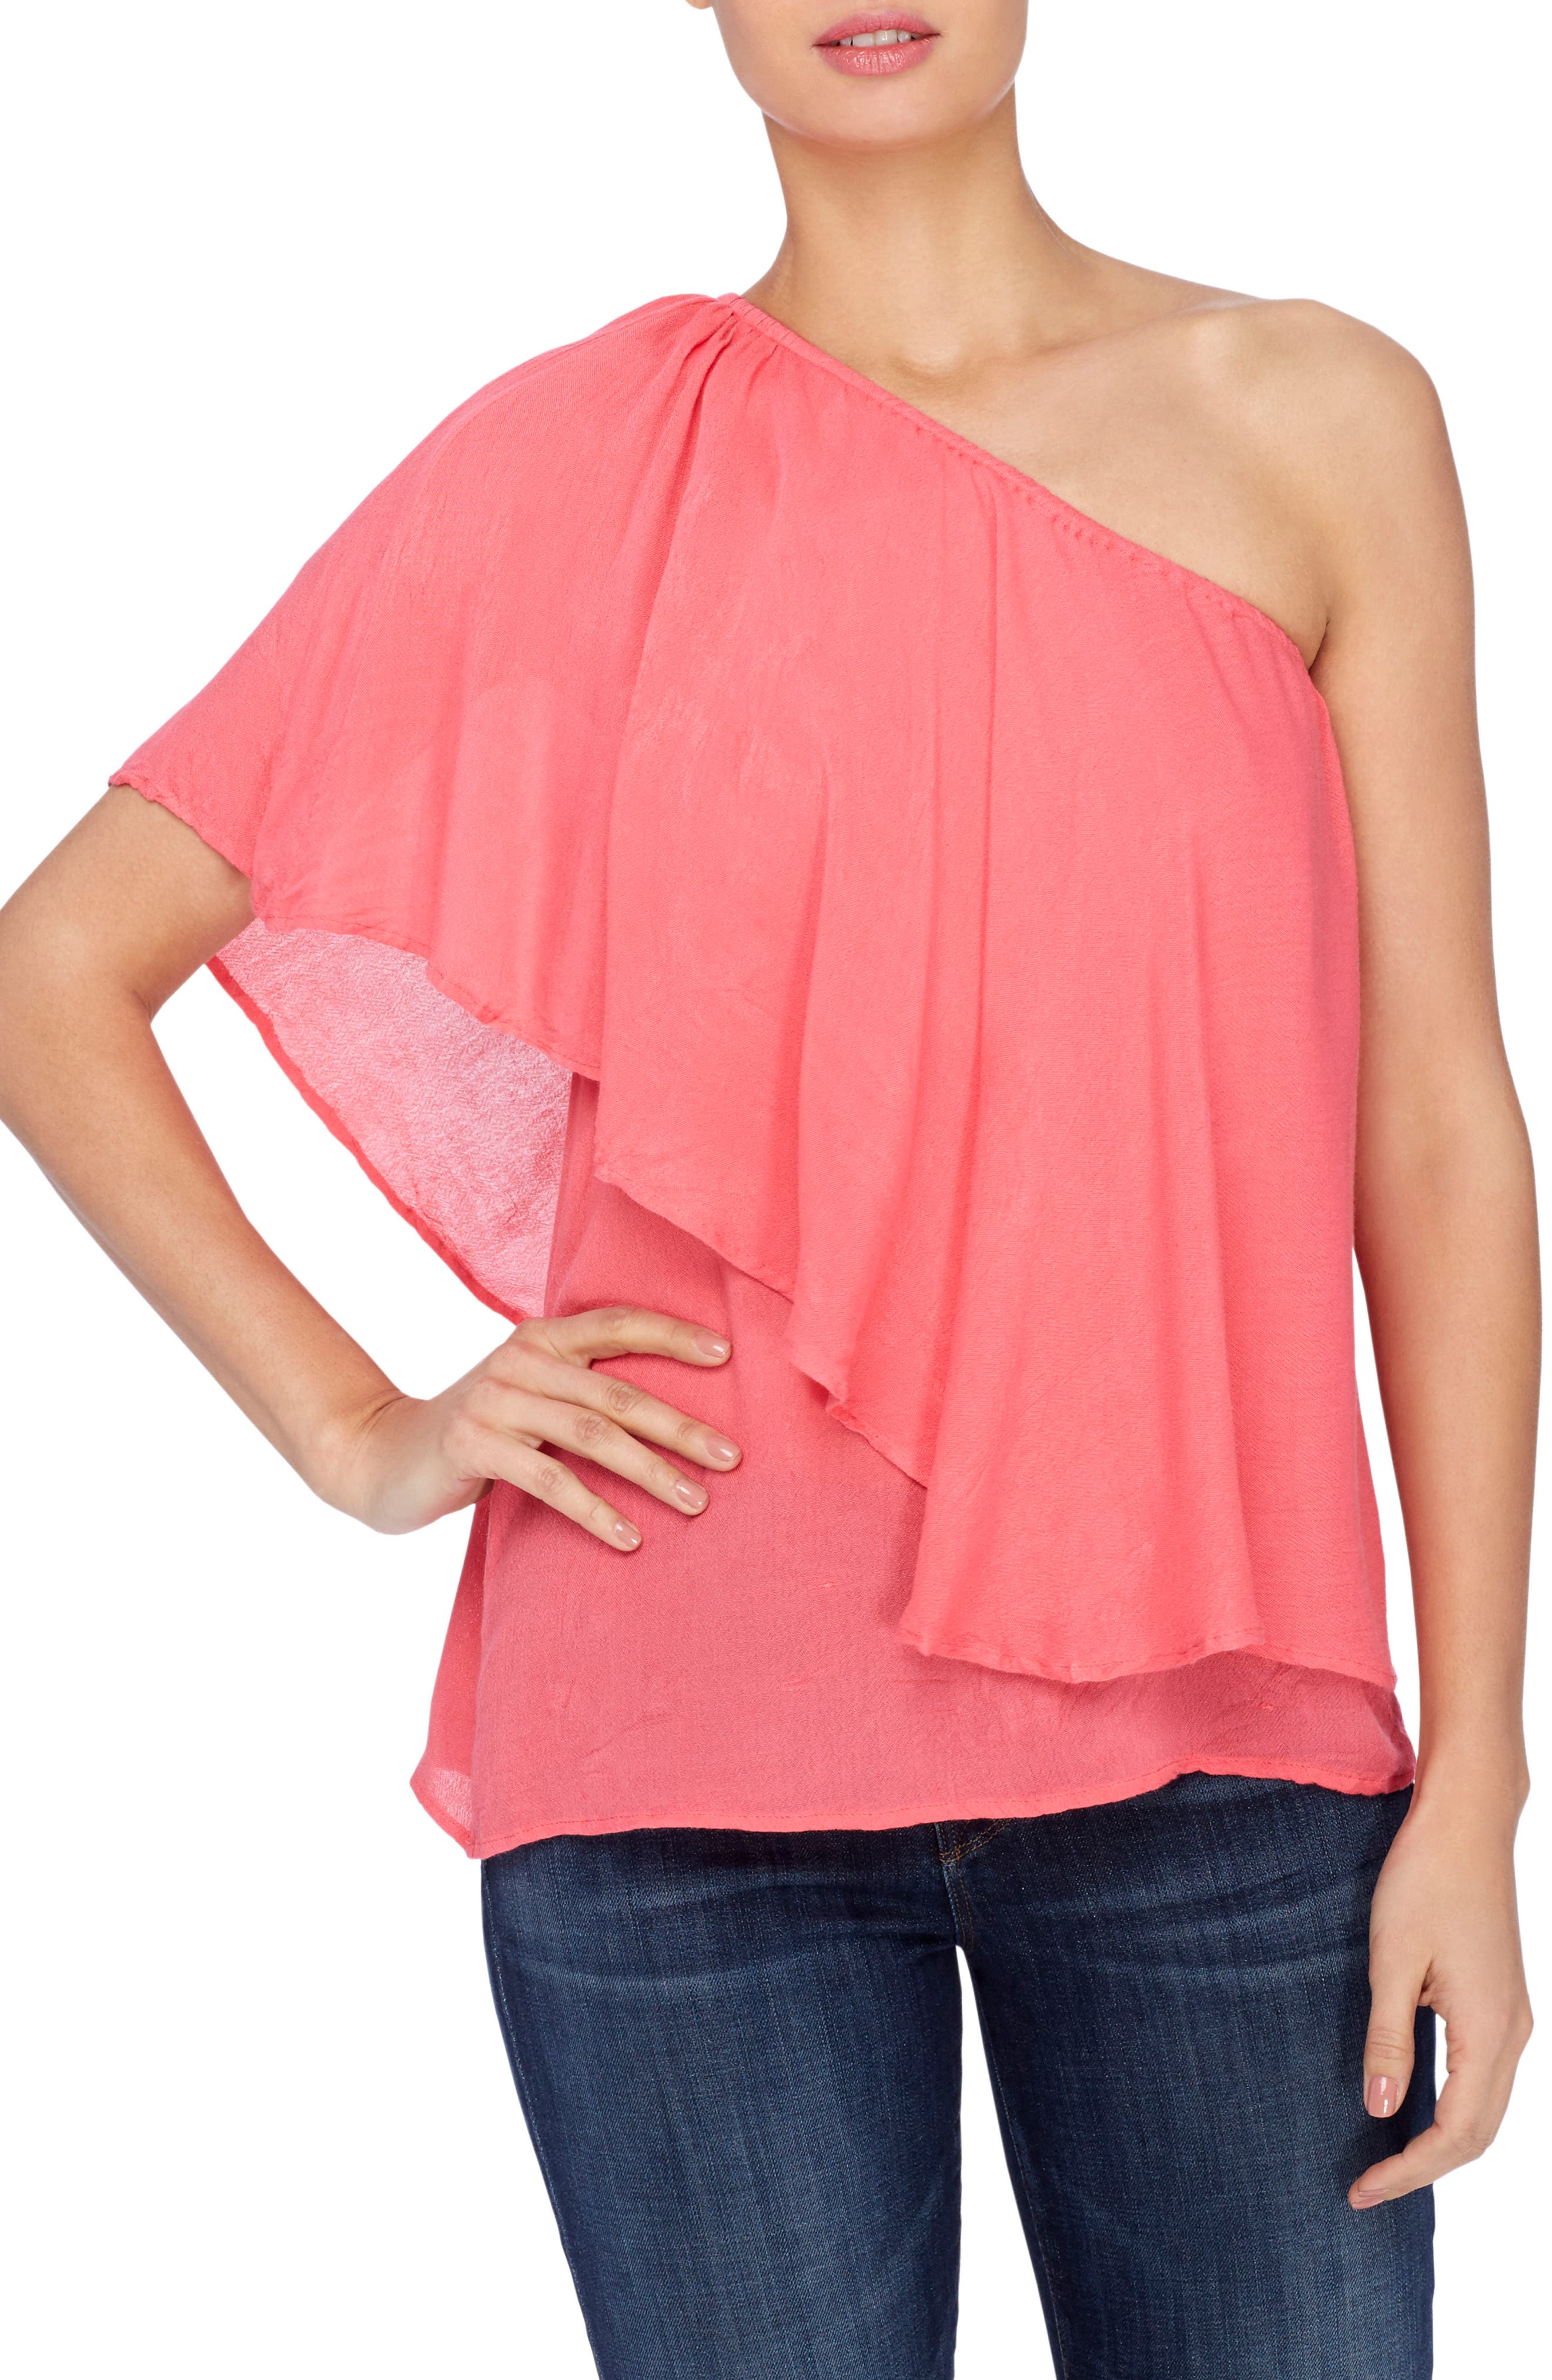 Magritte One-Shoulder Top,                             Main thumbnail 1, color,                             Azalea Pink